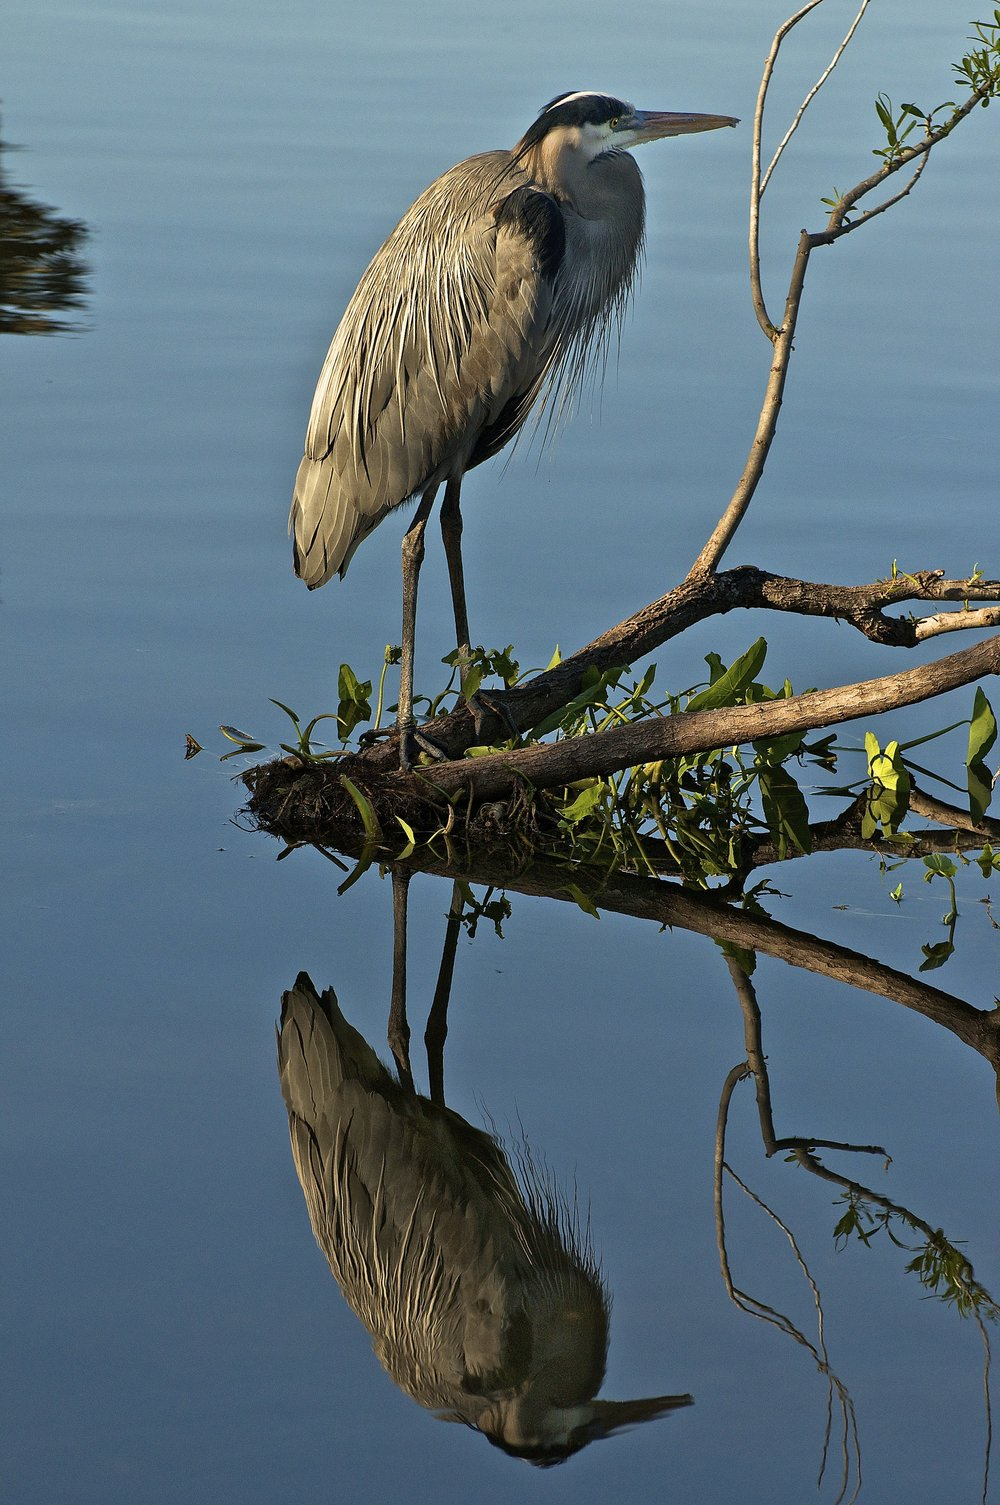 Reflections of a Blue Heron